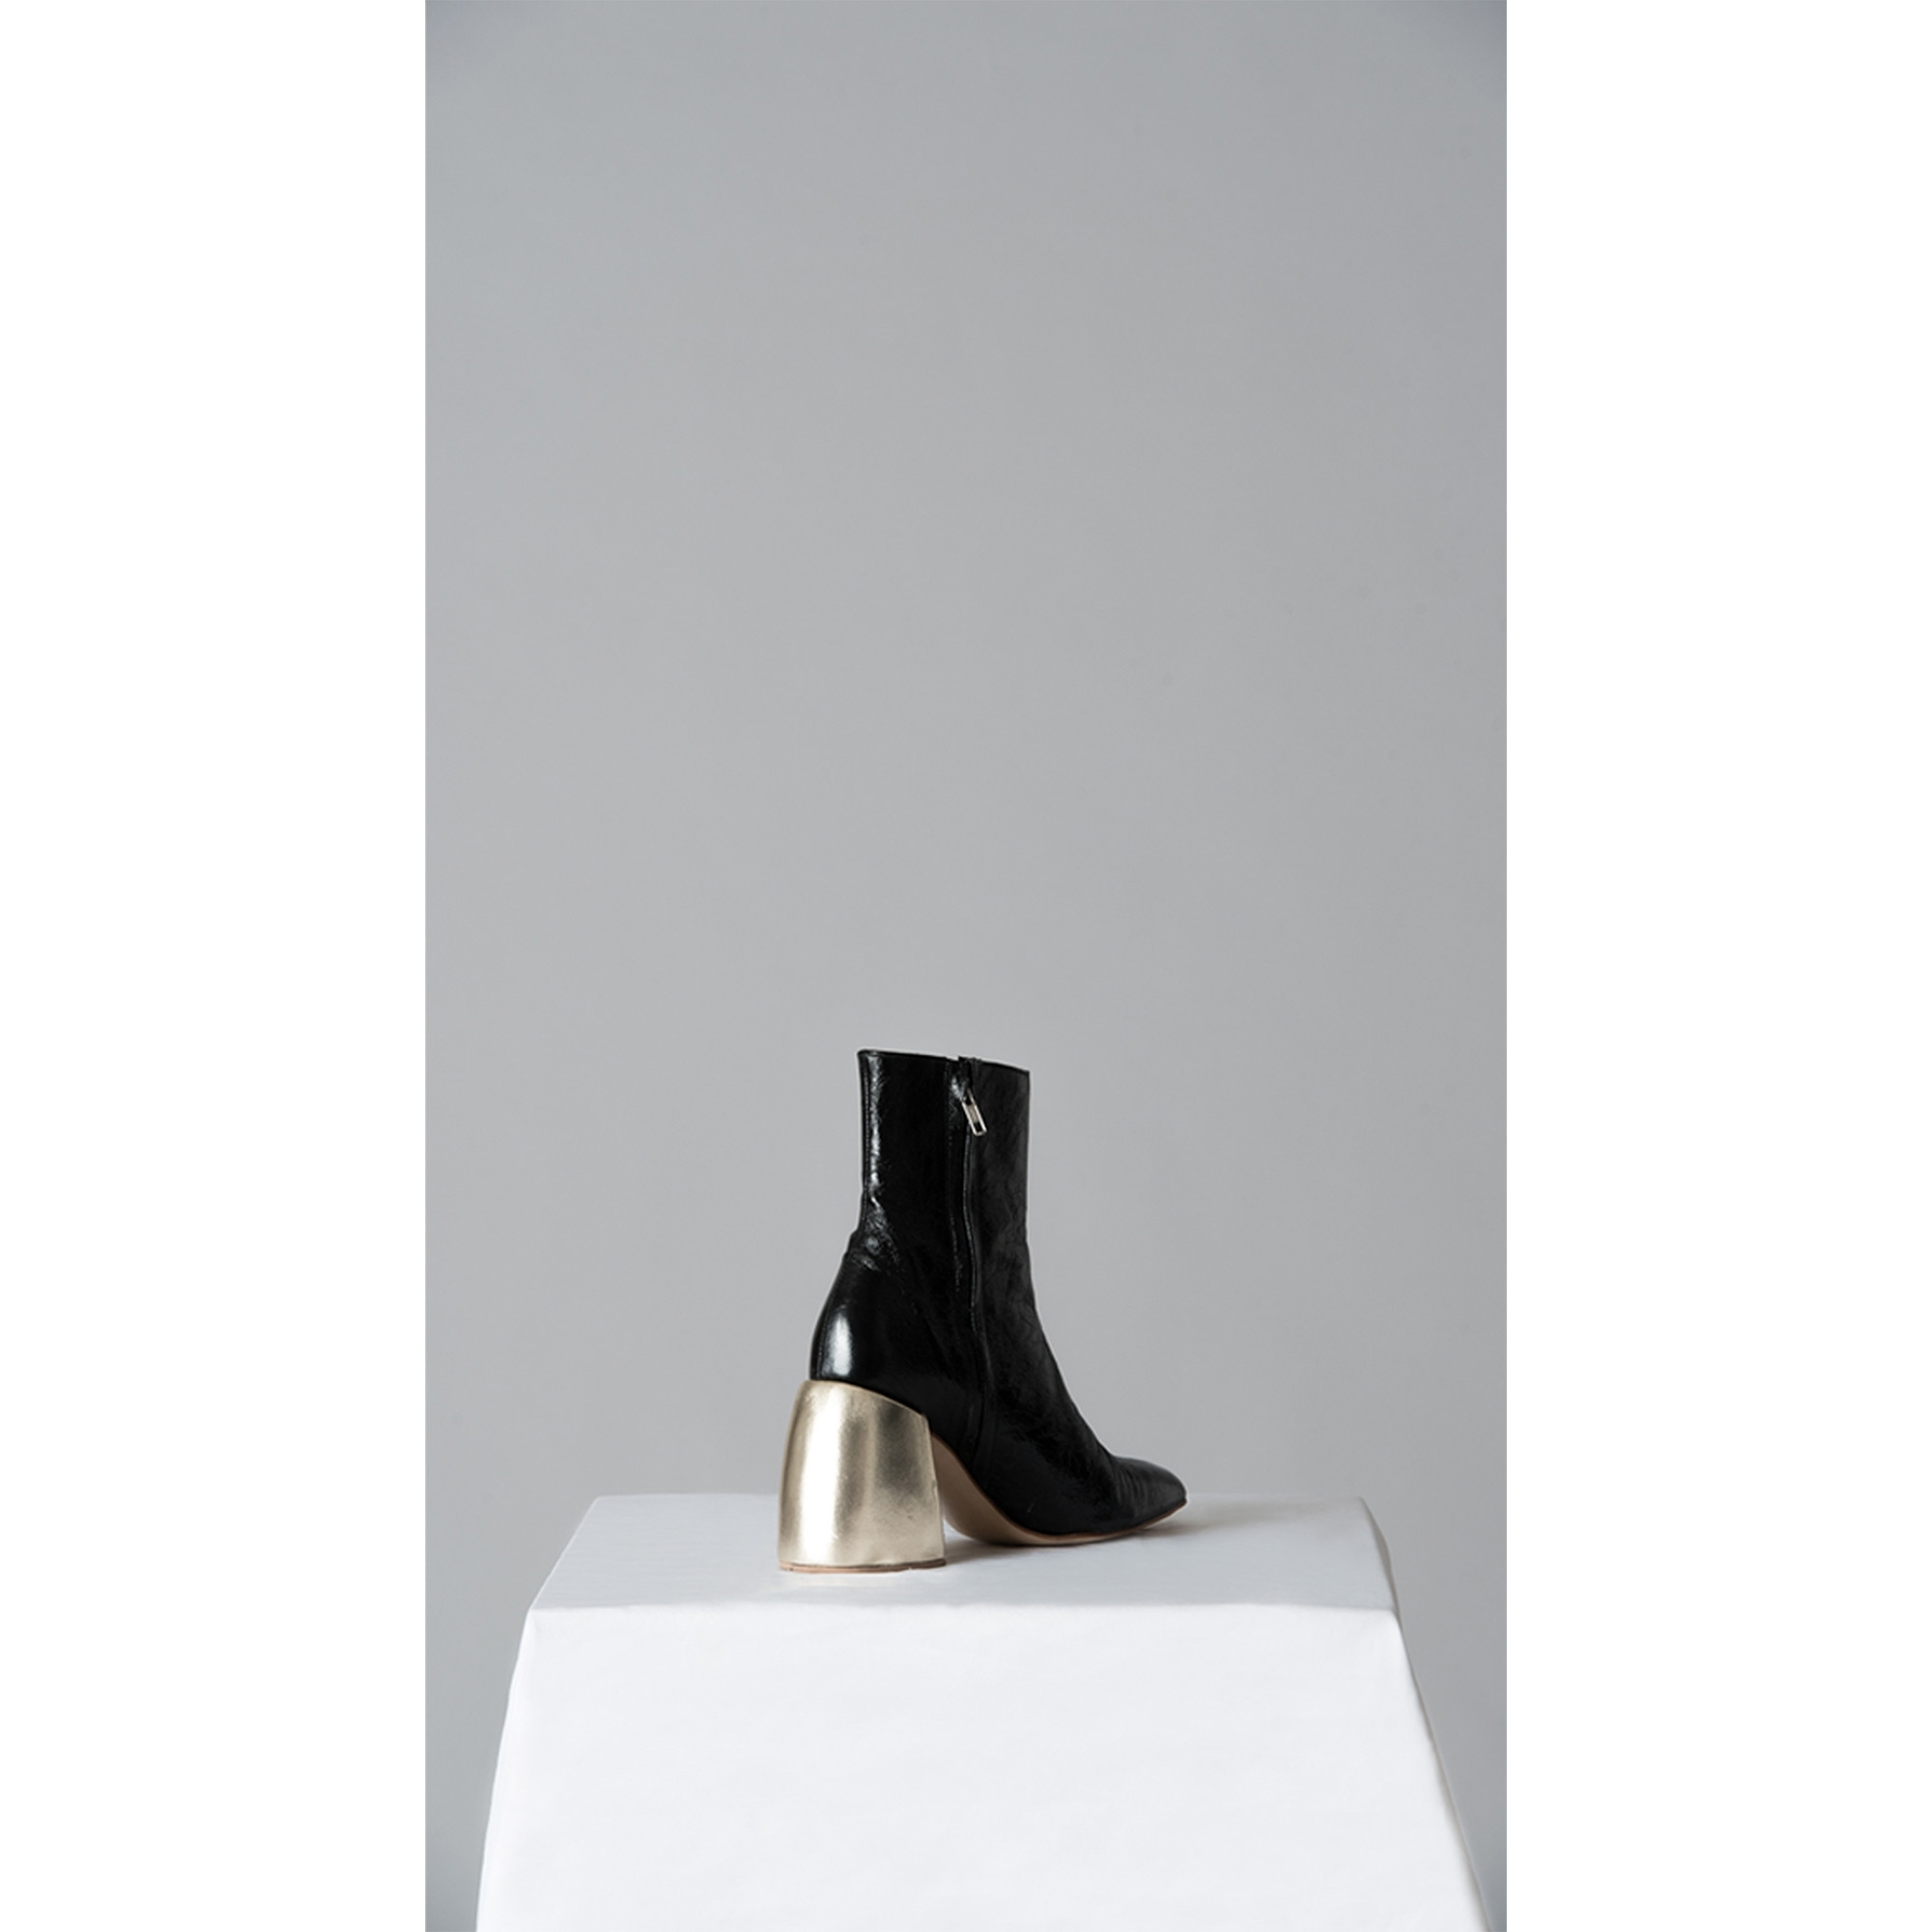 Made To Order Black Leather Ankle Boots With Wooden Heels